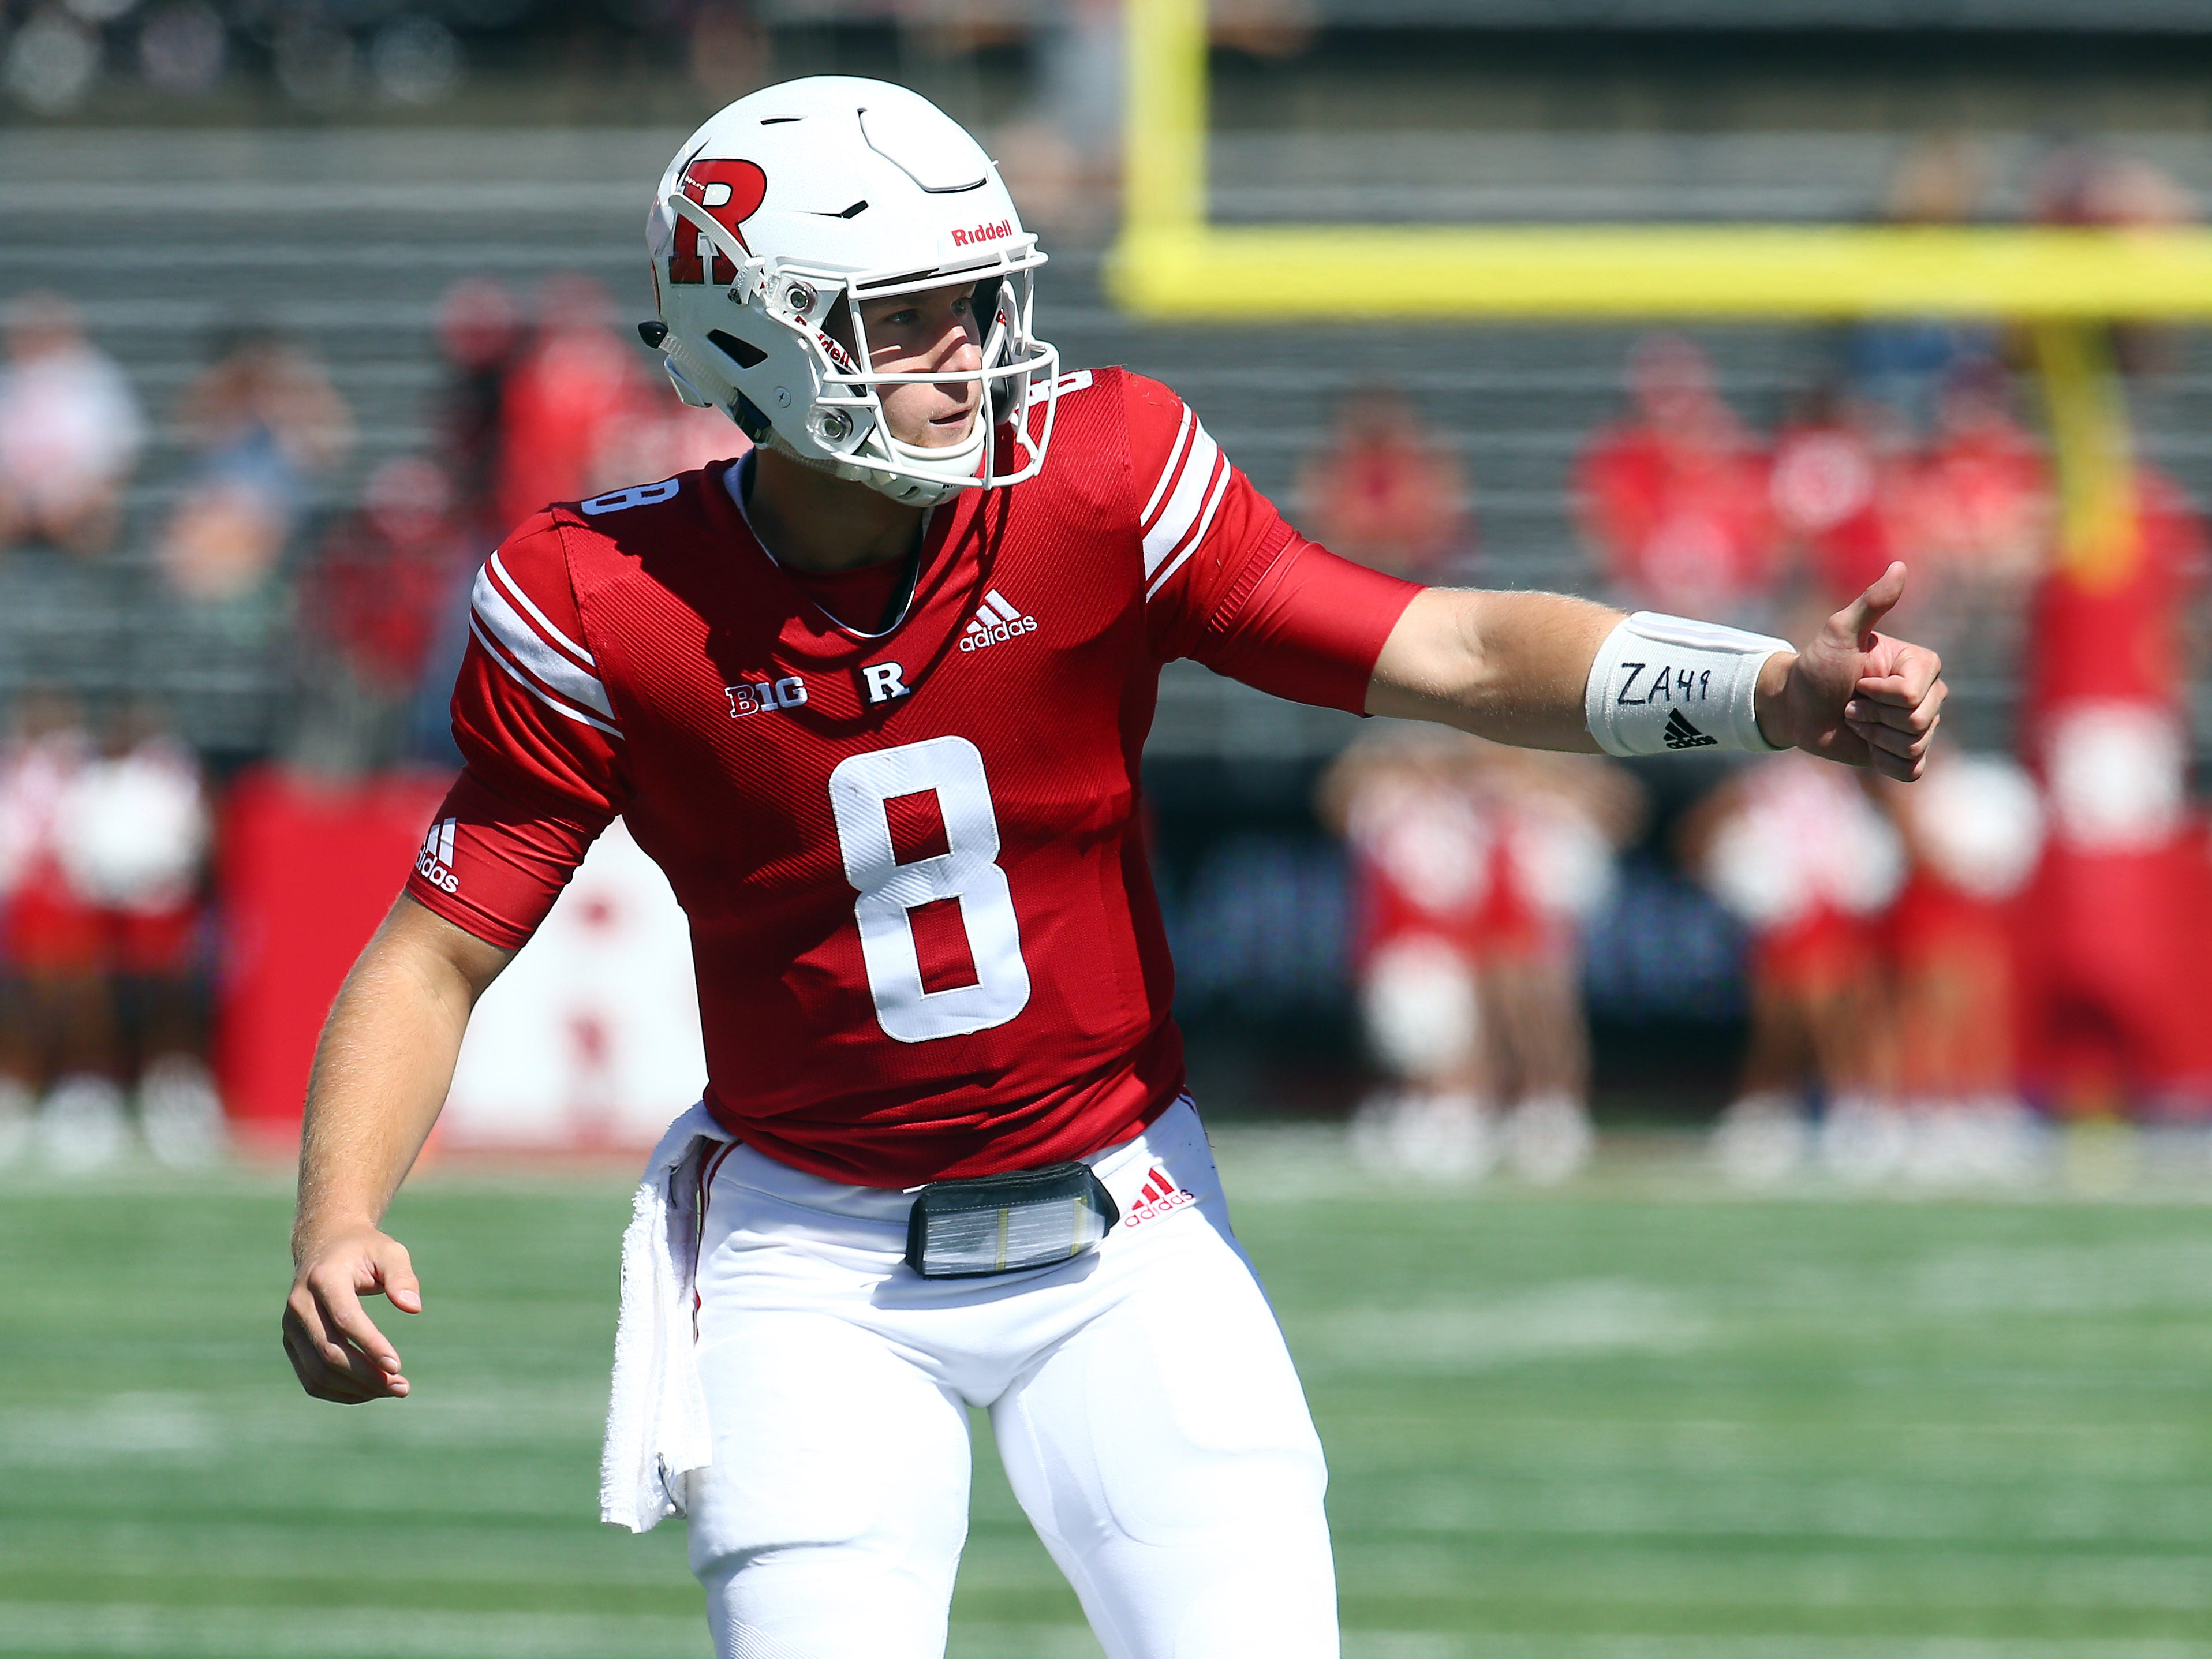 Rutgers quarterback Artur Sitkowski wears the initials and number of friend former Old Bridge High School baseball star, Florida State U. signee Zach Attianese. Attianese and his father killed in a six-vehicle crash in Michigan in June. September 22, 2018, Piscataway, NJ